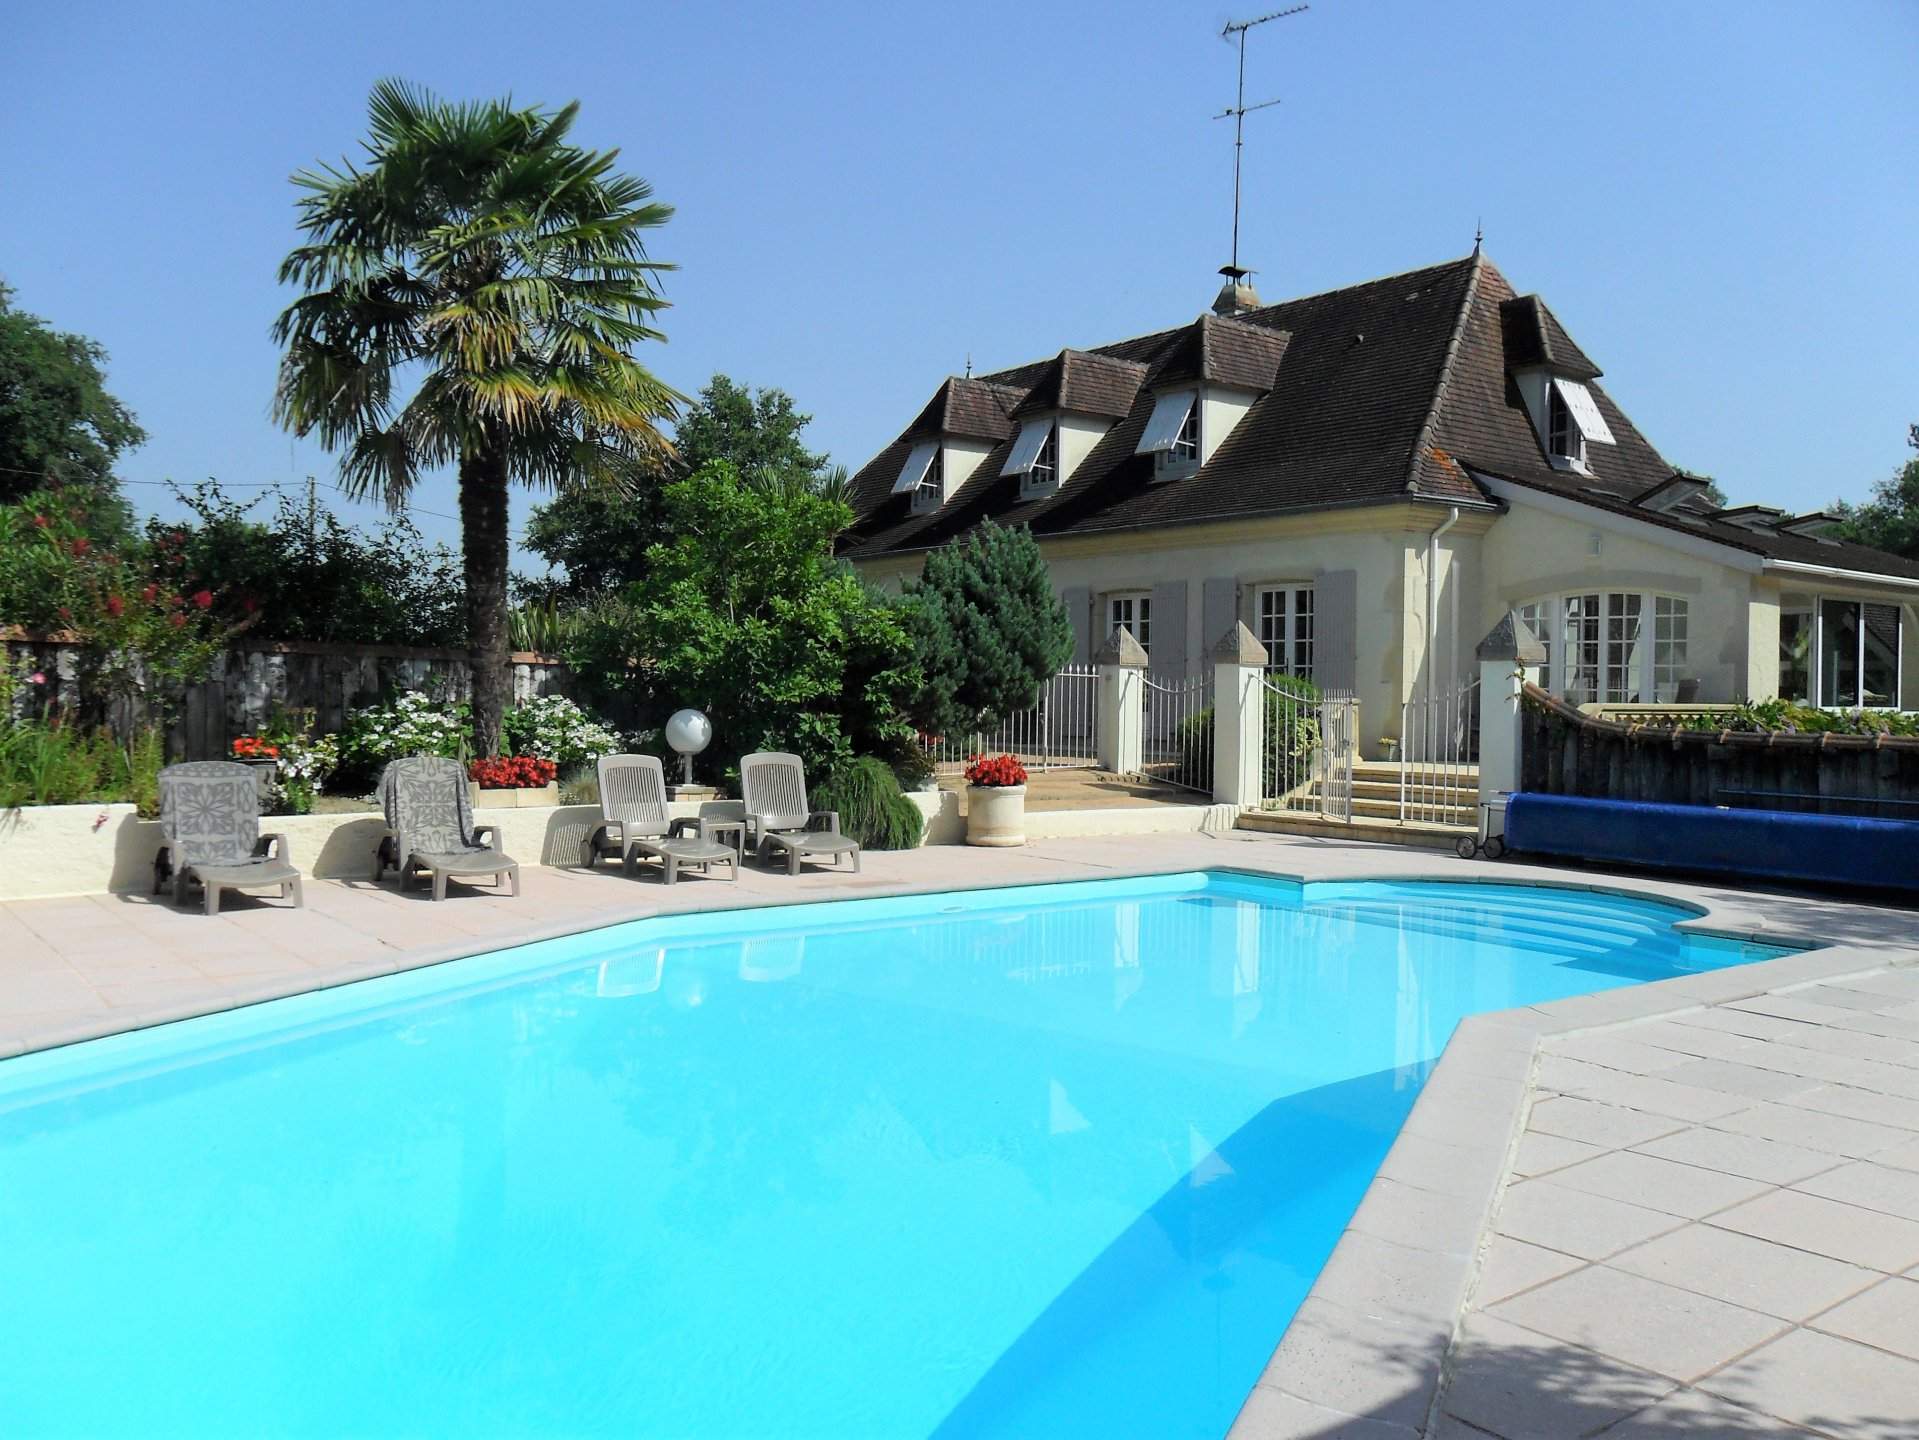 Near ORTHEZ - A beautiful neo-Béarnaise house with pool, set in a hectare of landscaped gardens bord